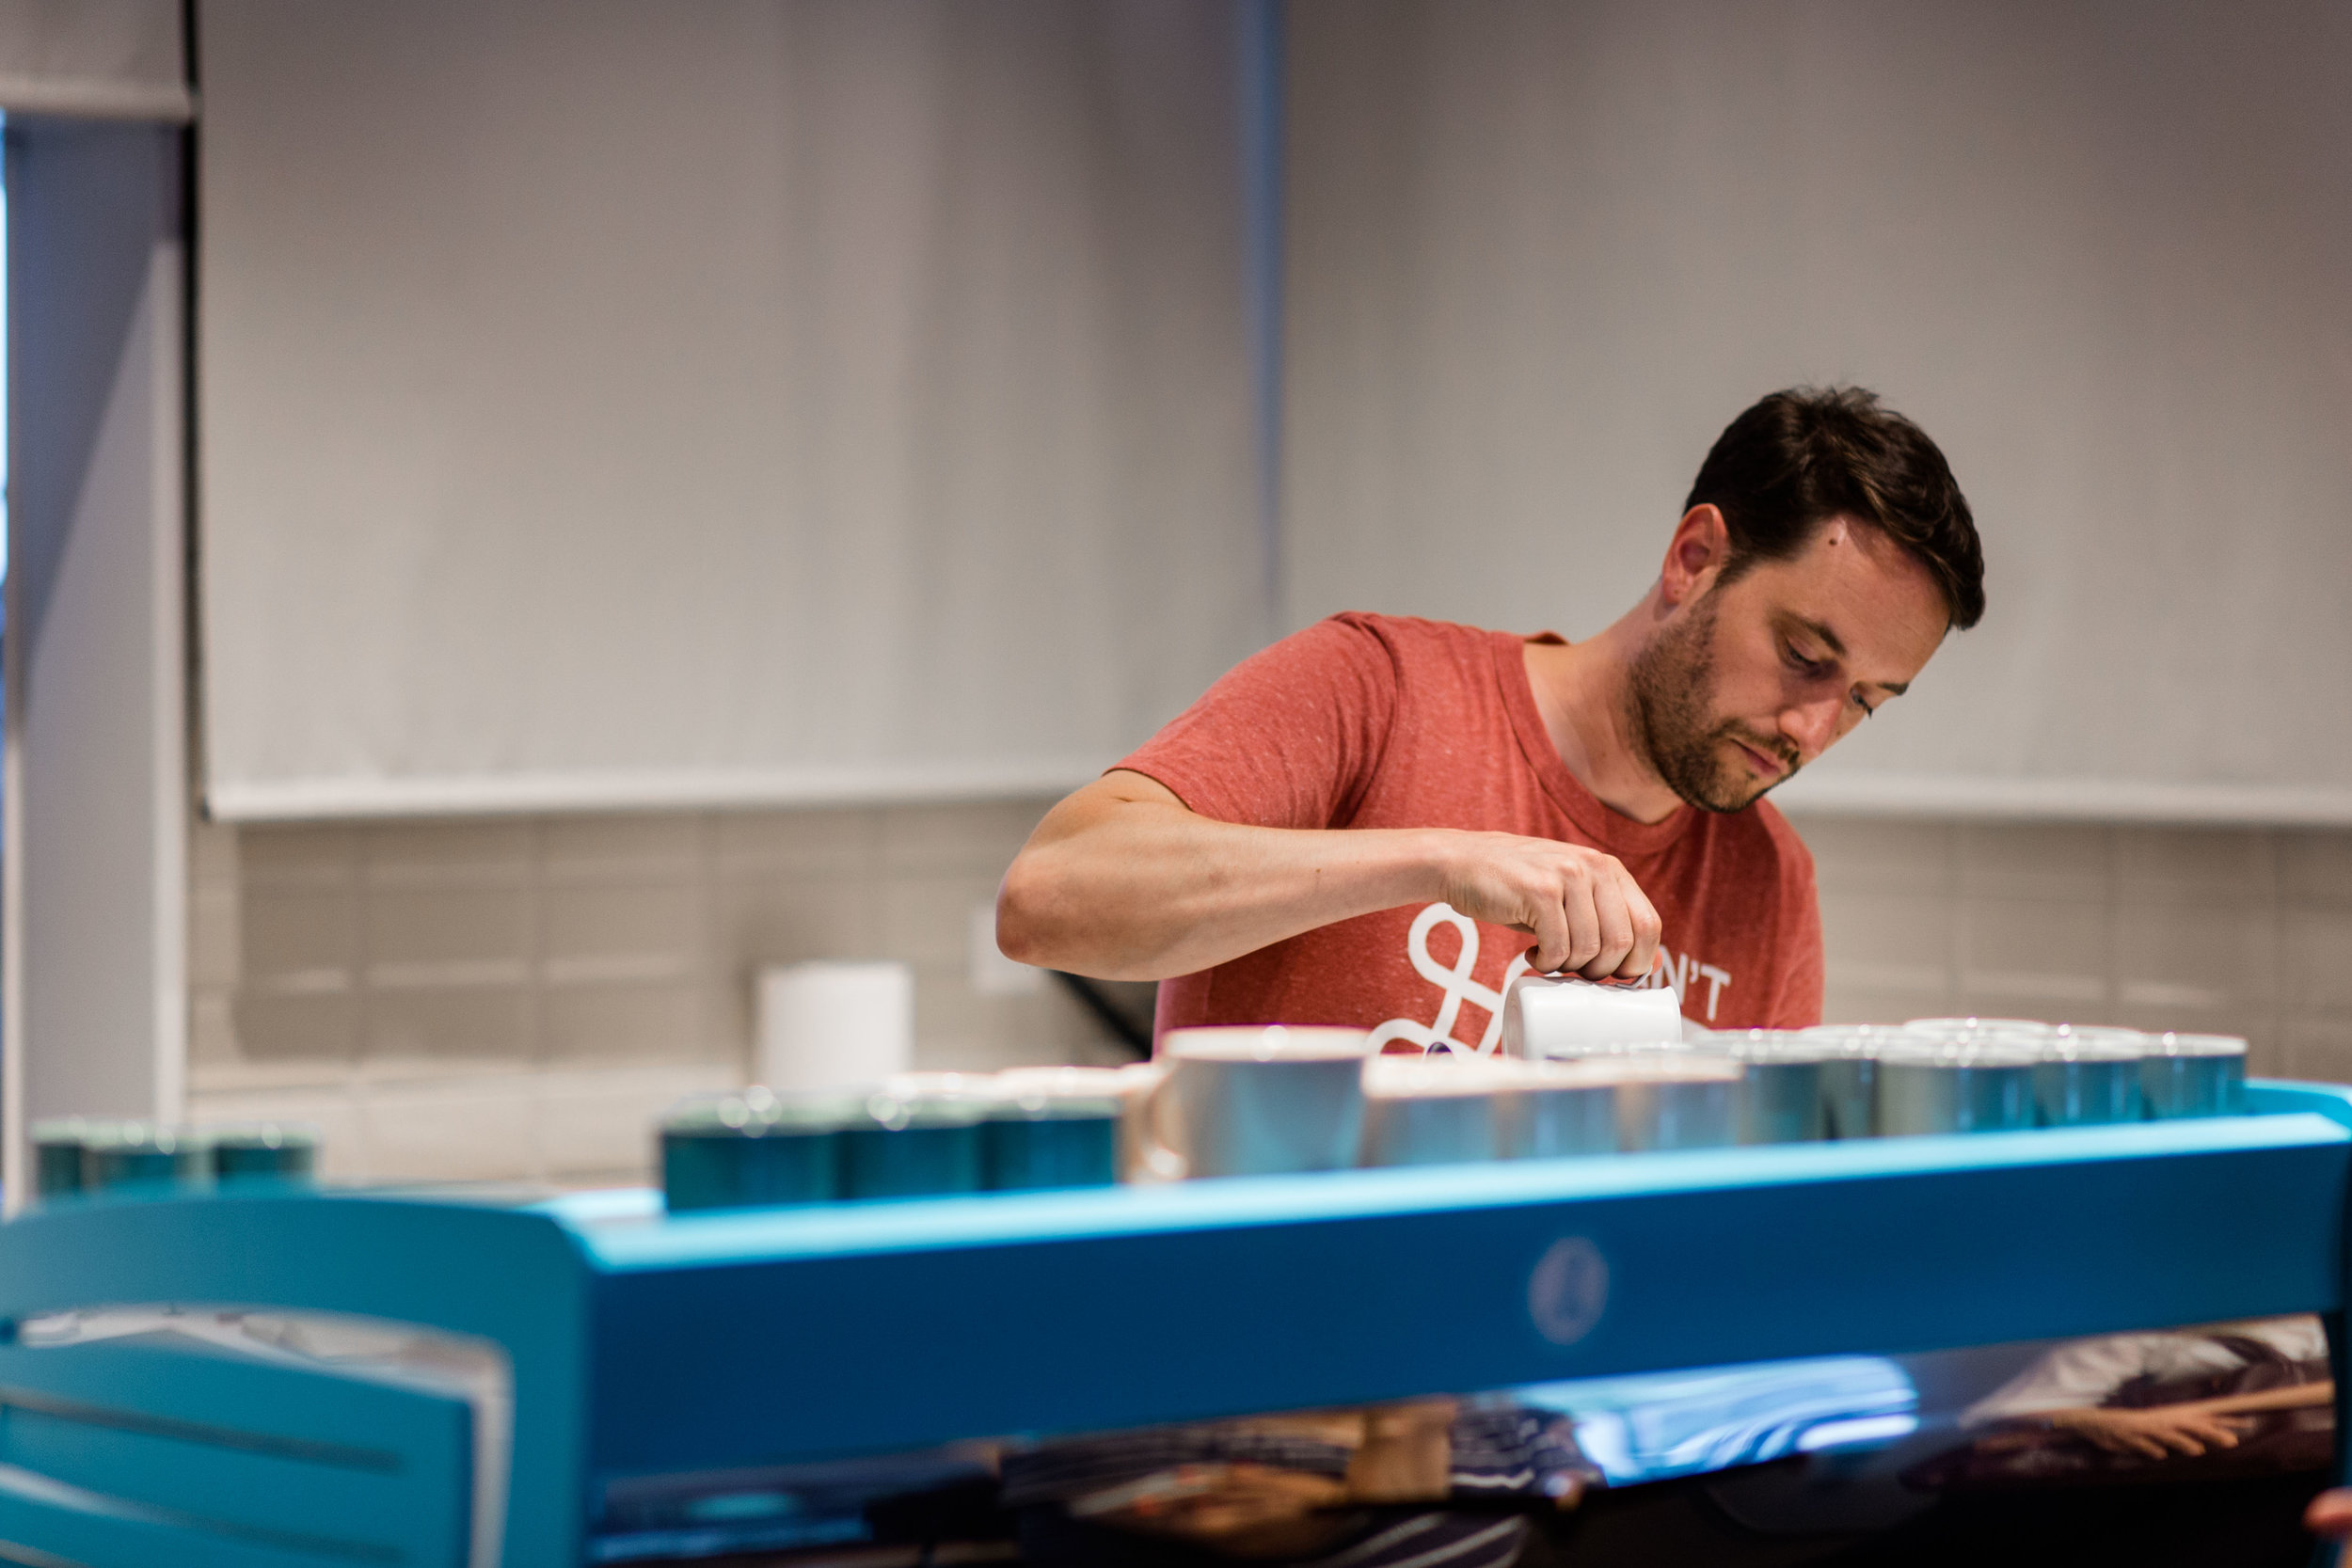 Mathieu Theis - Swiss Barista Champion 2016 and 2018